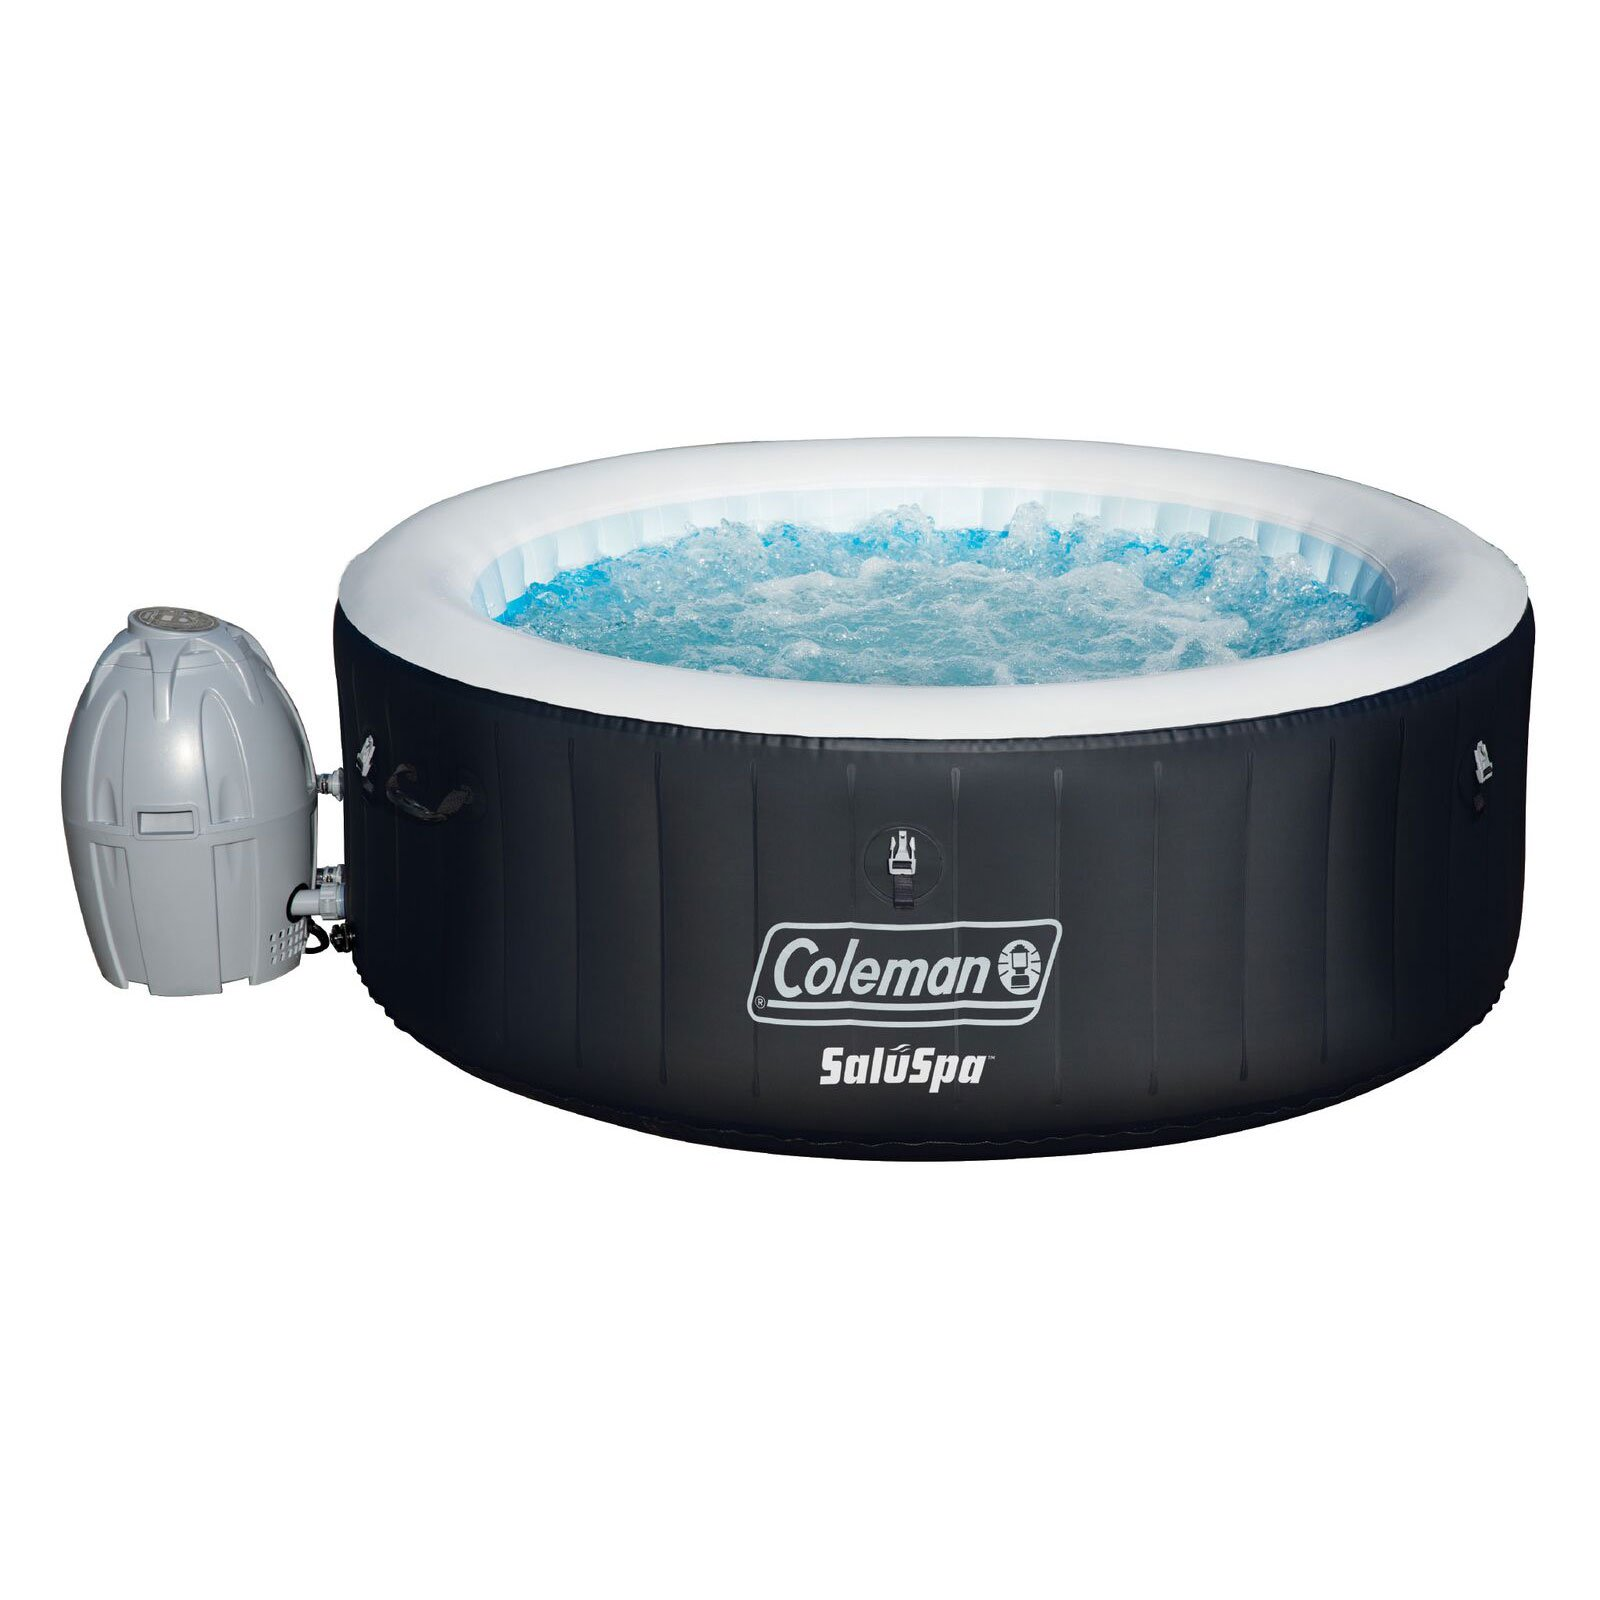 Coleman SaluSpa 4 Person Portable Inflatable Outdoor Spa Hot Tub ...